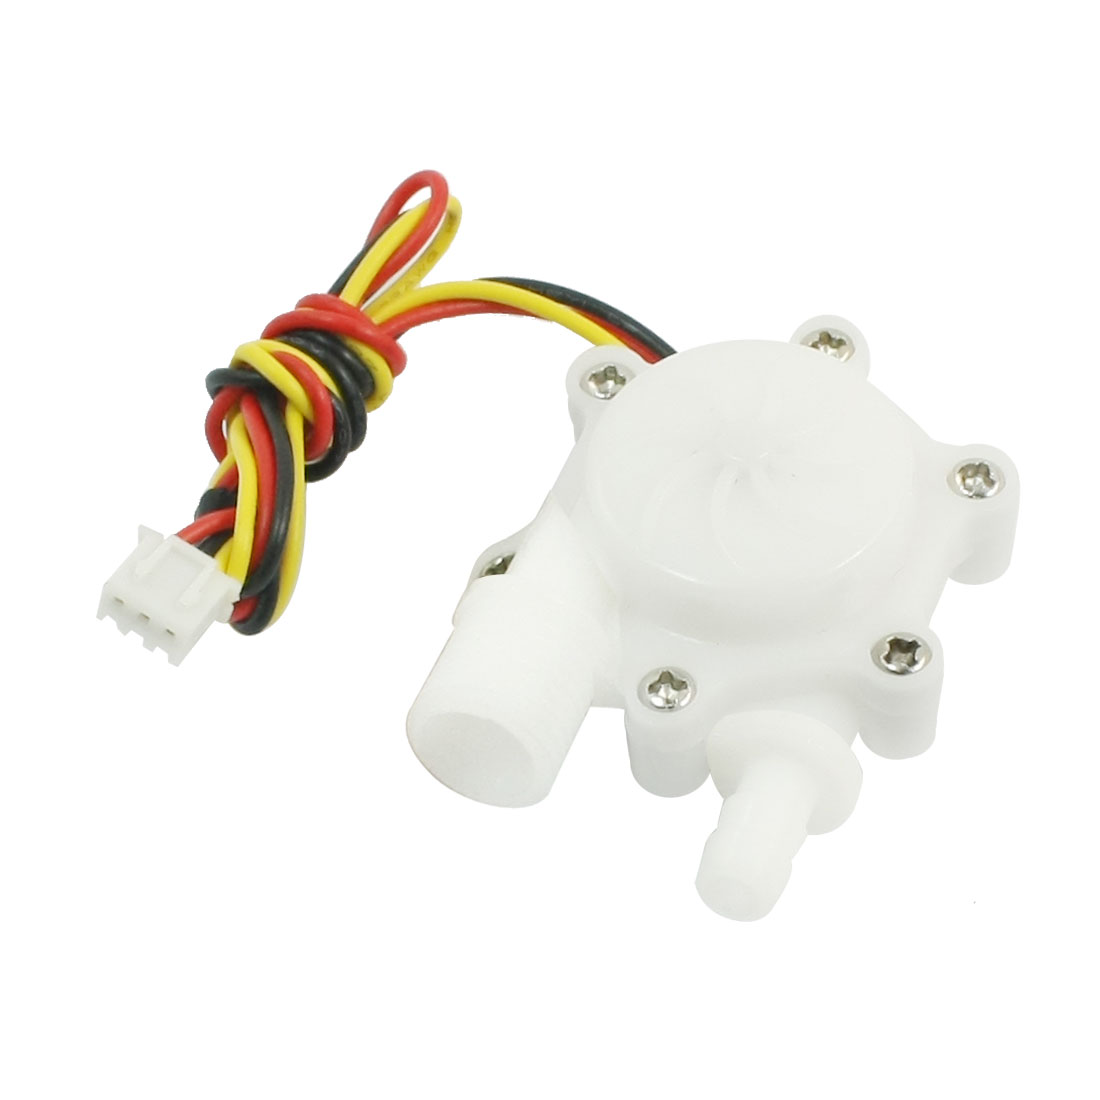 SEN-HW06FA G1/4 Inlet 6mm Outlet Water Flow Sensor 0.15-1.5L/min 0.8Mpa